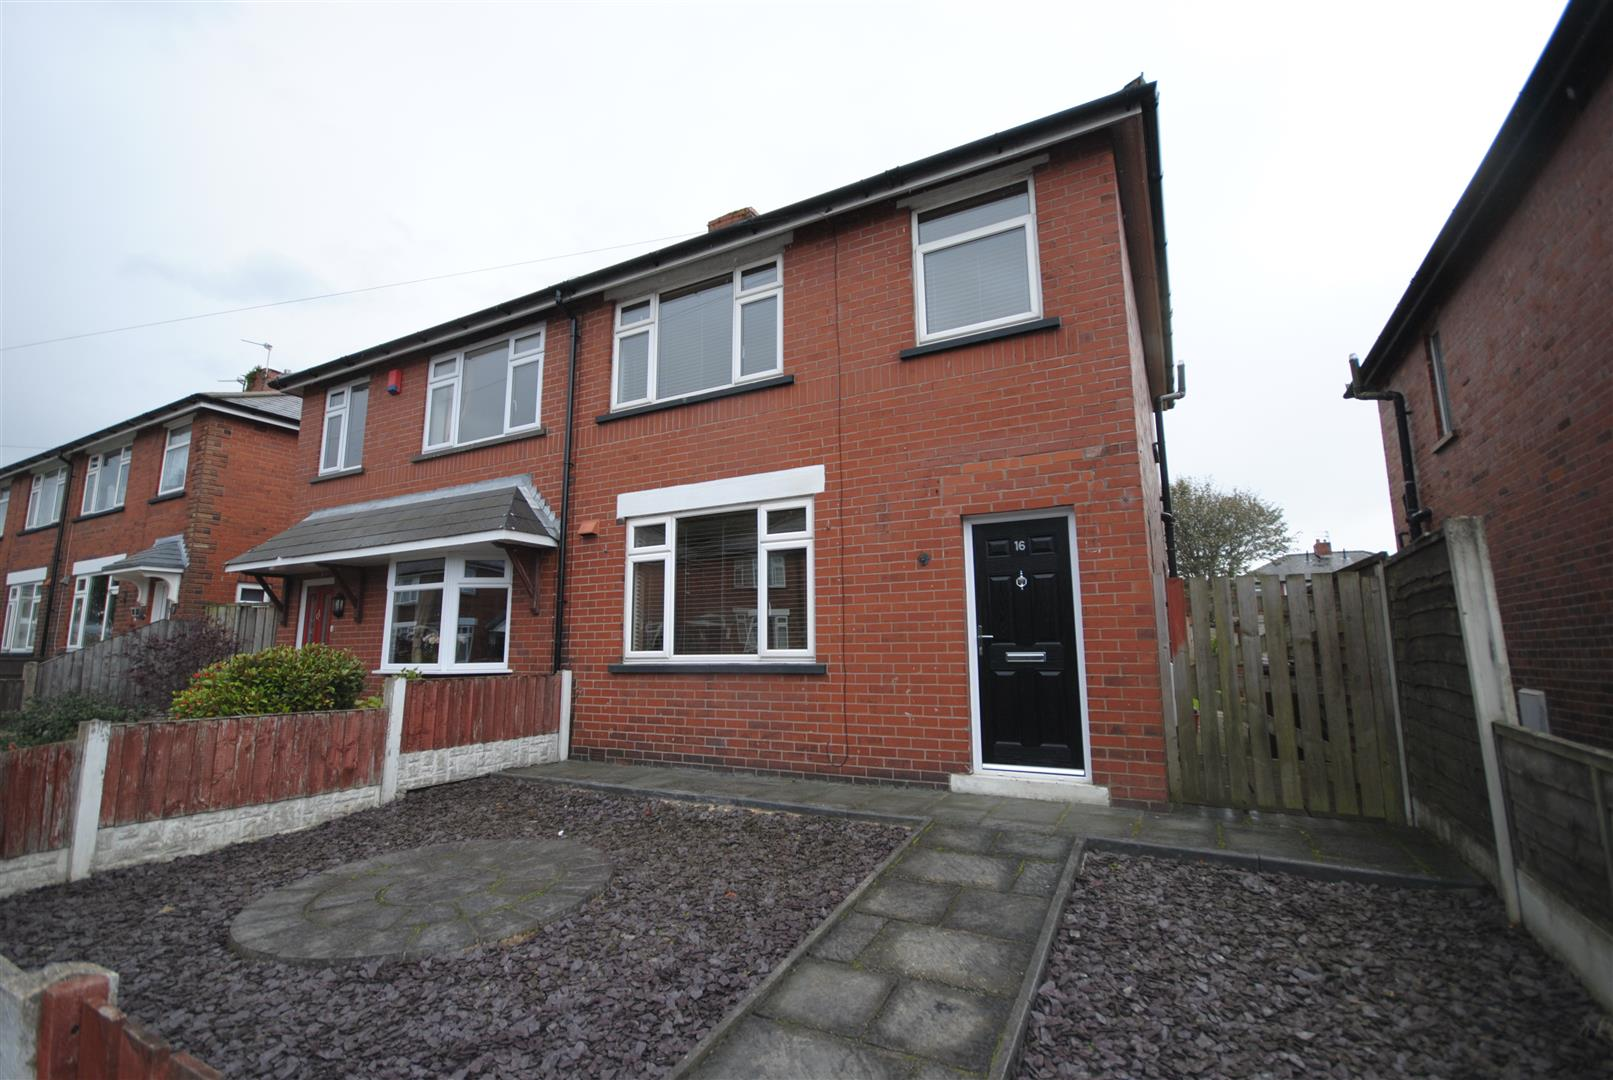 3 Bedrooms Semi Detached House for sale in Crawford Avenue, Aspull, Wigan